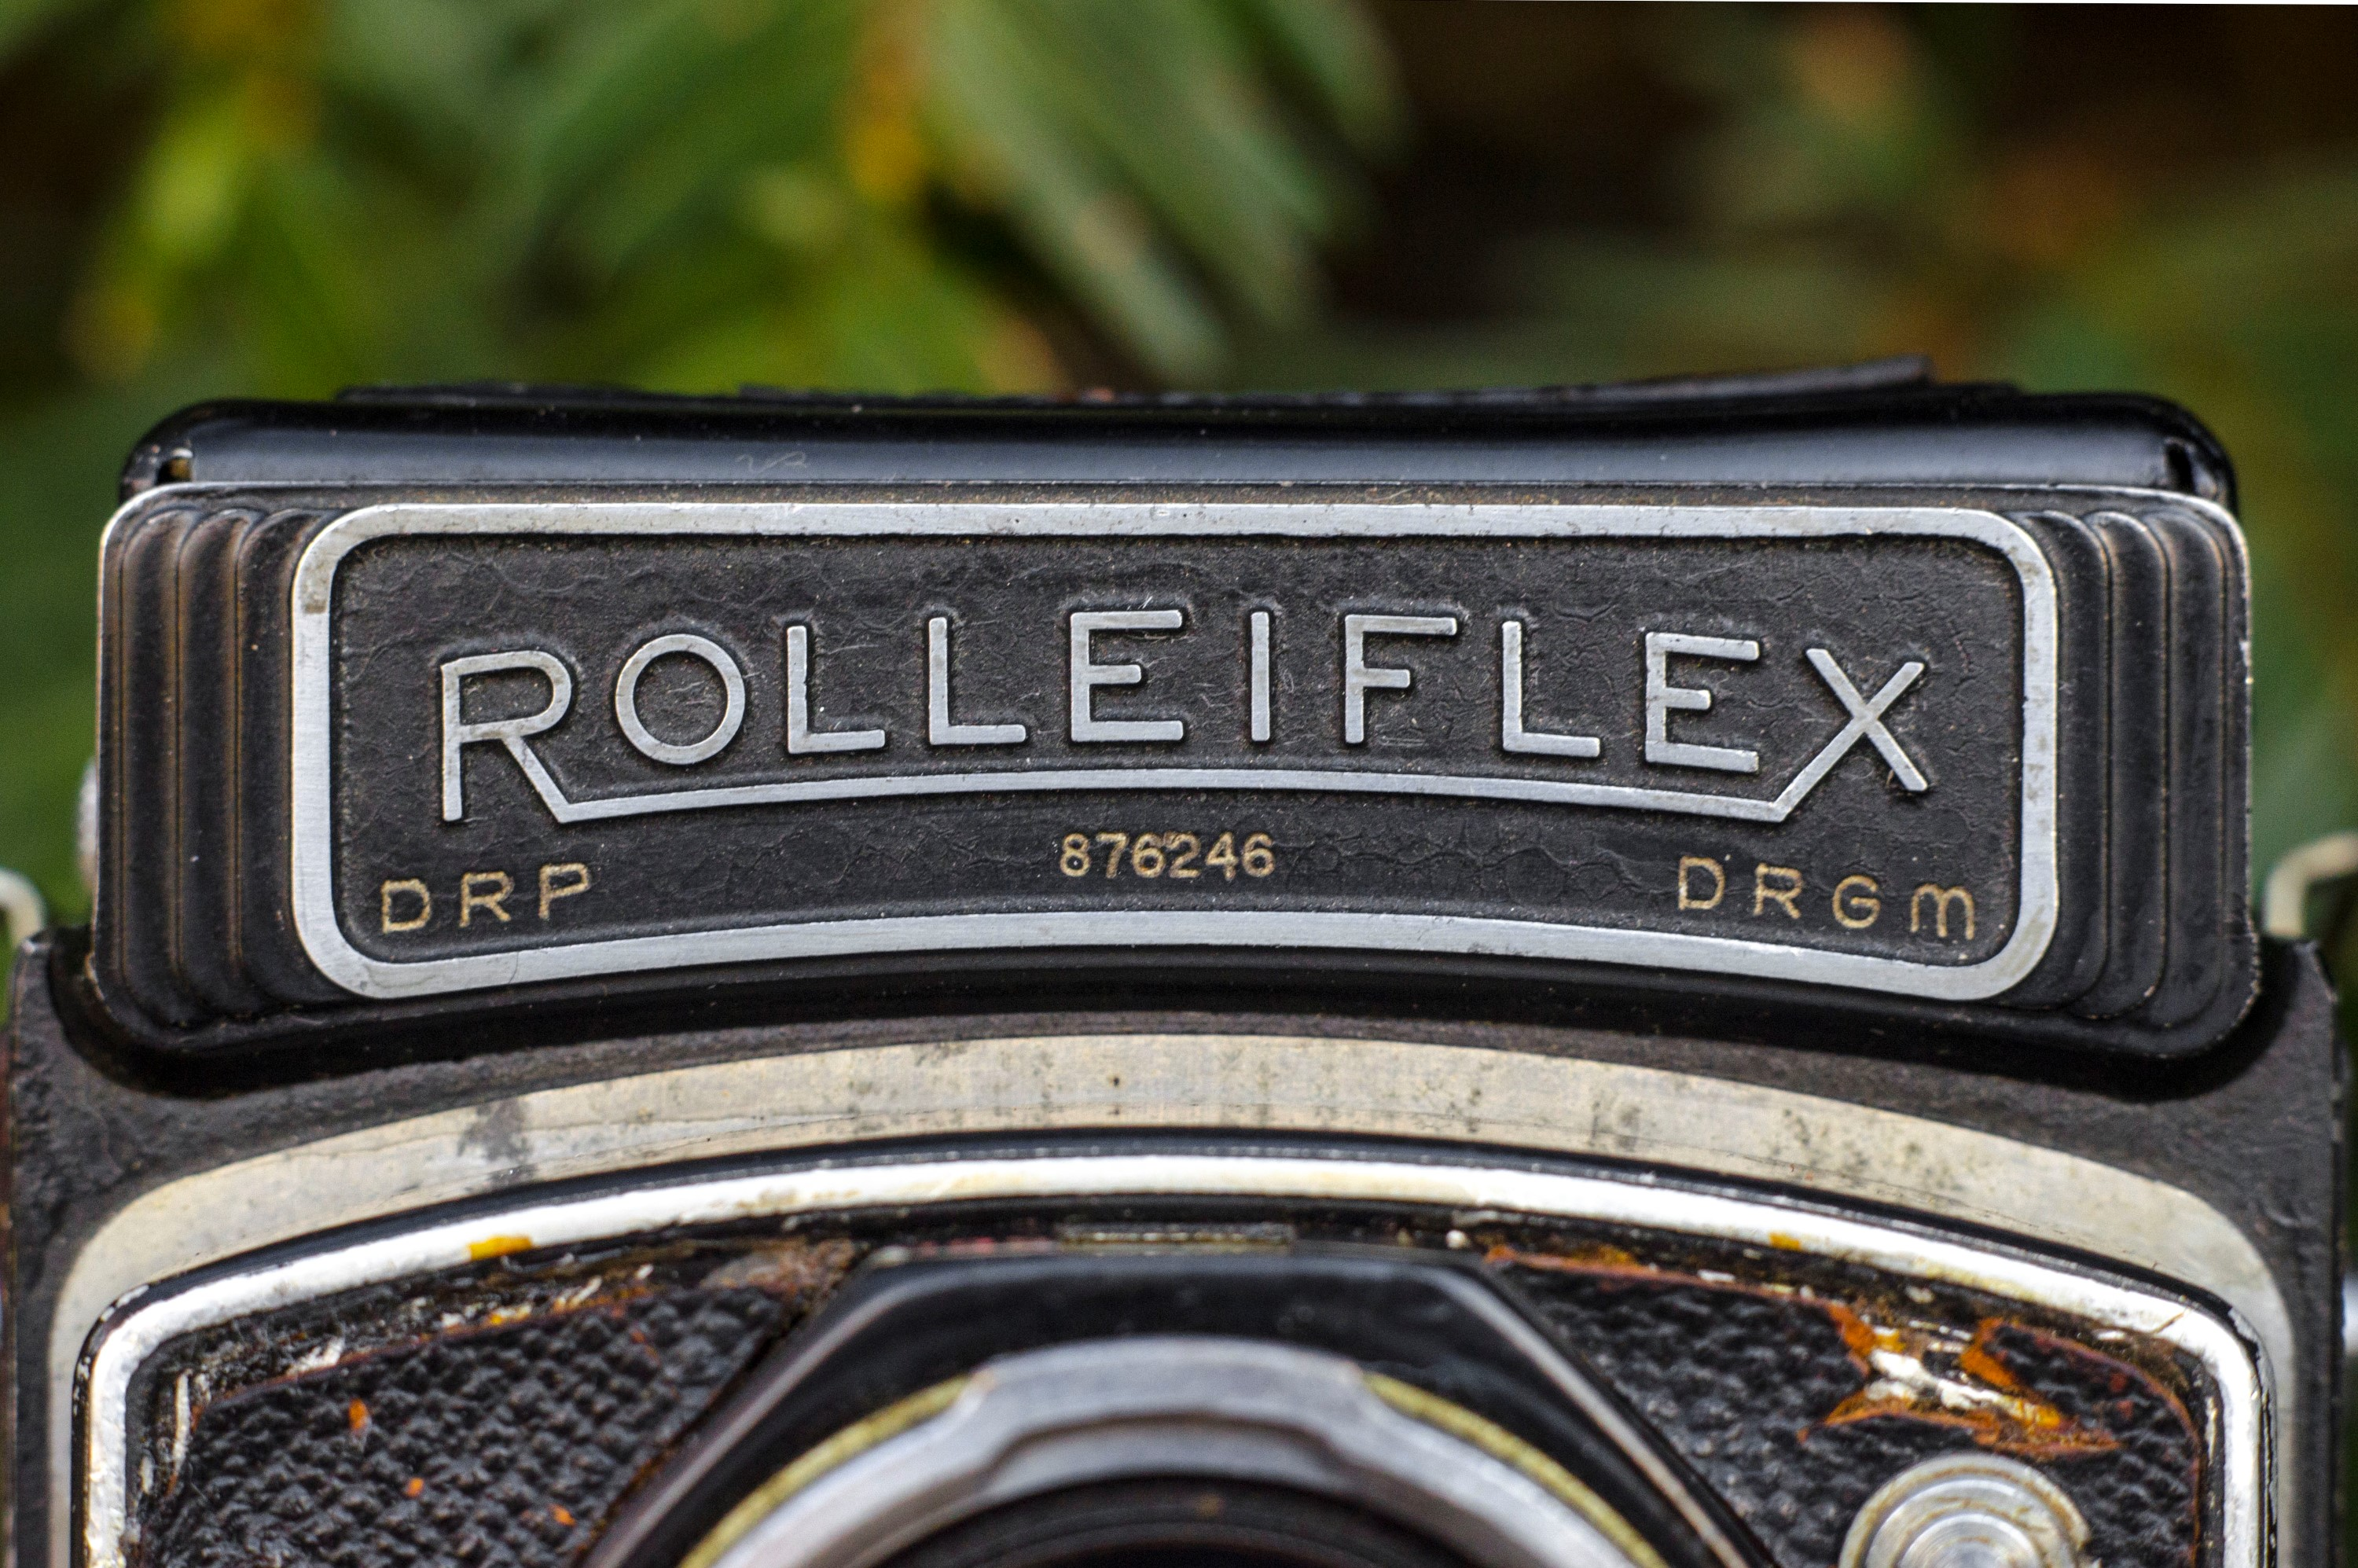 Keppler's Vault 6: How to Use the Rolleiflex